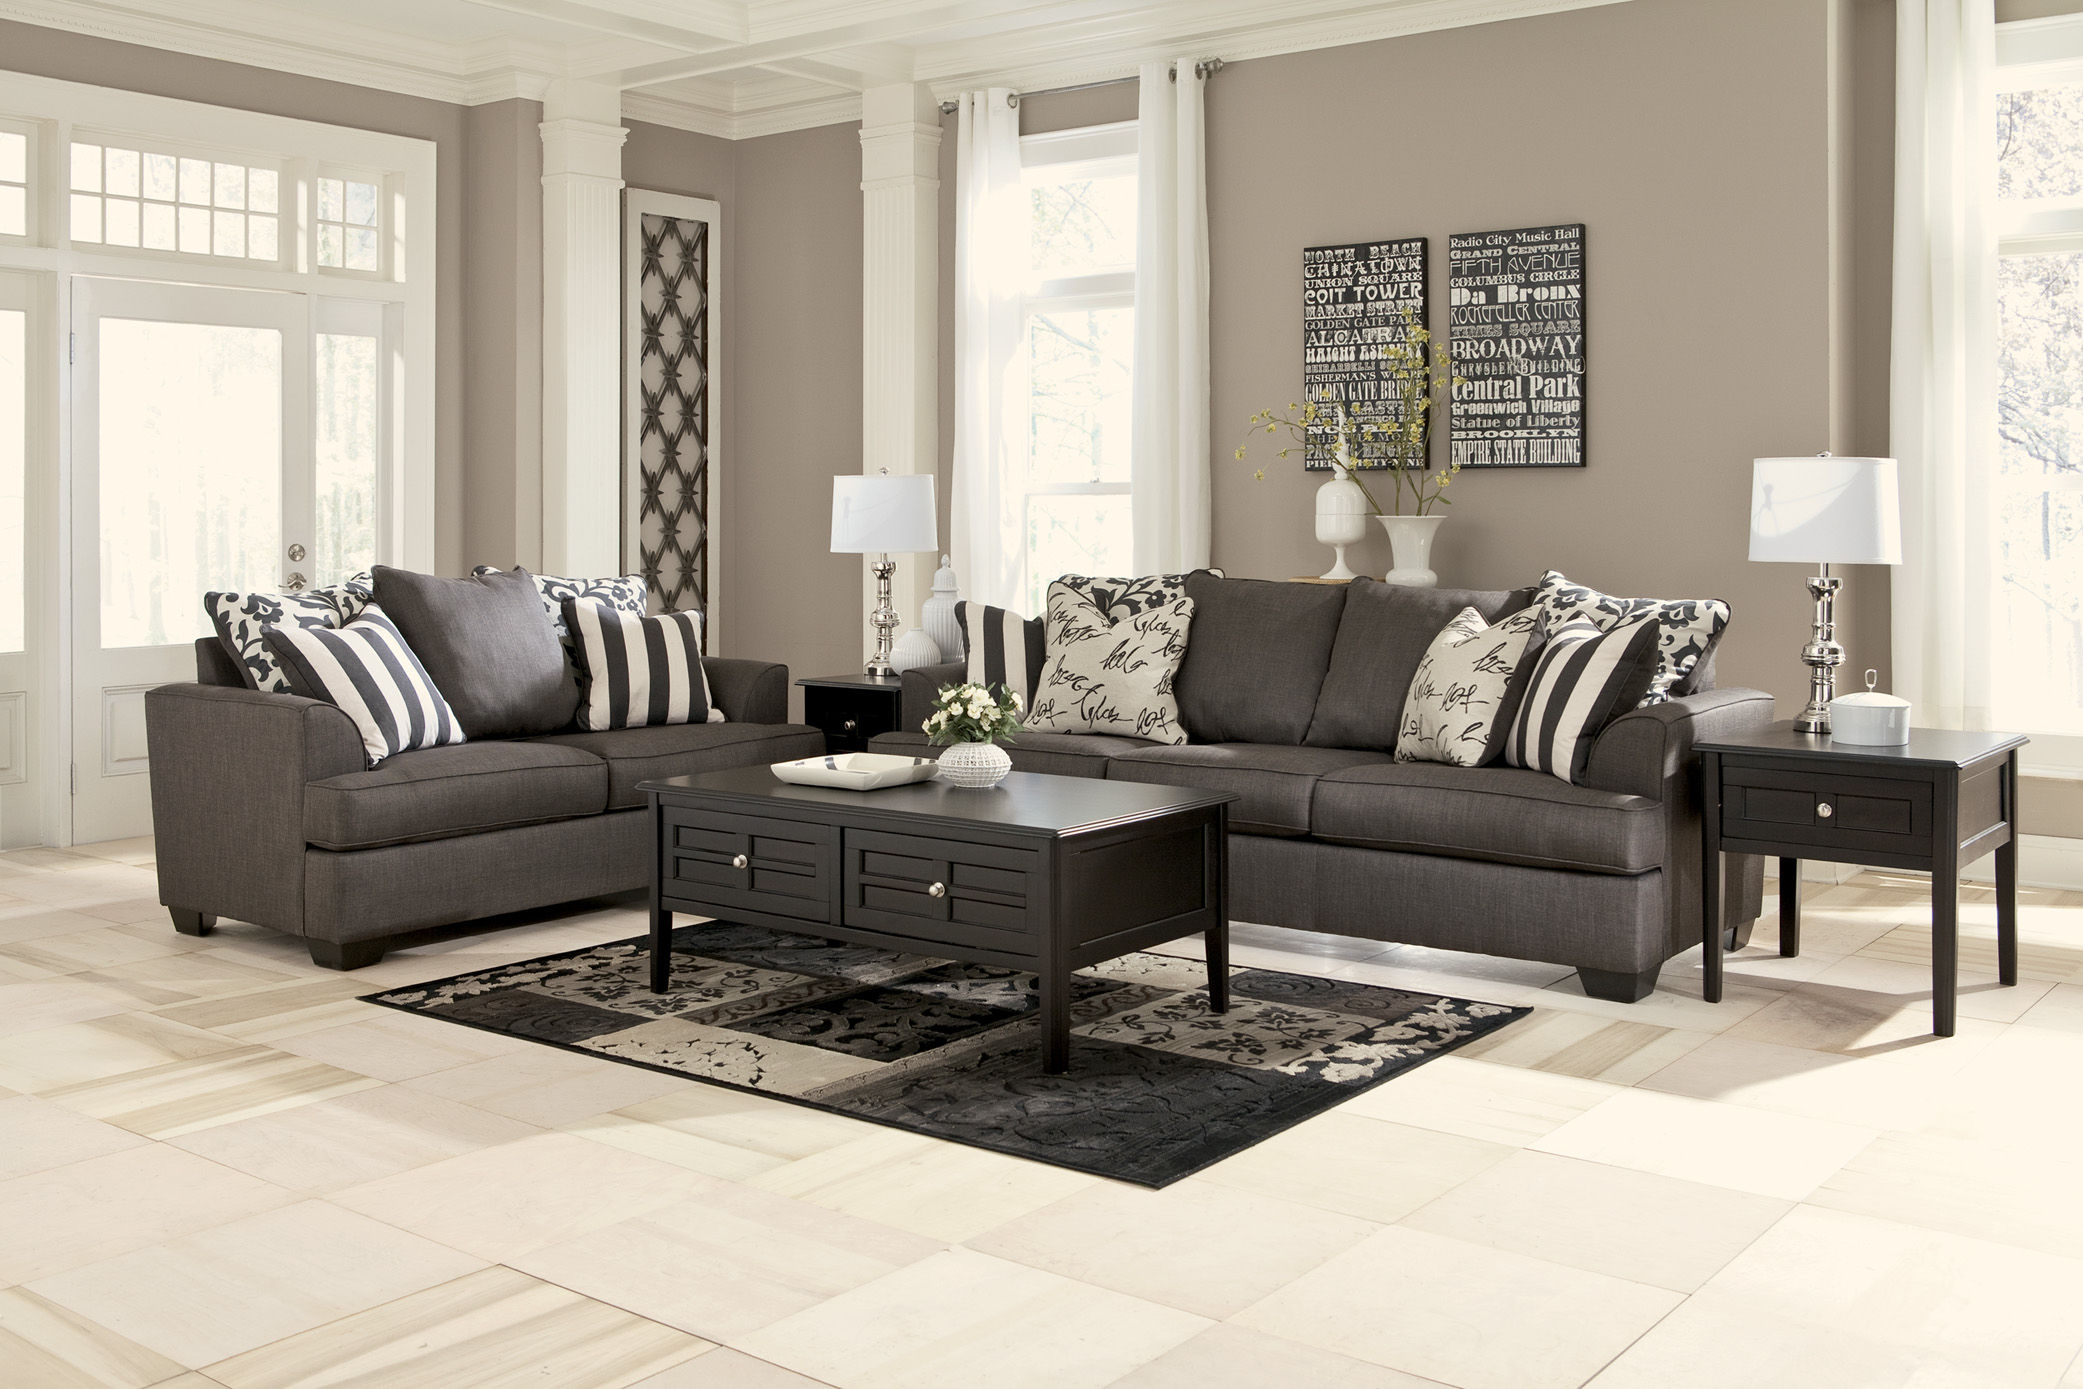 Levon contemporary charcoal fabric living room set for Best living room set deals